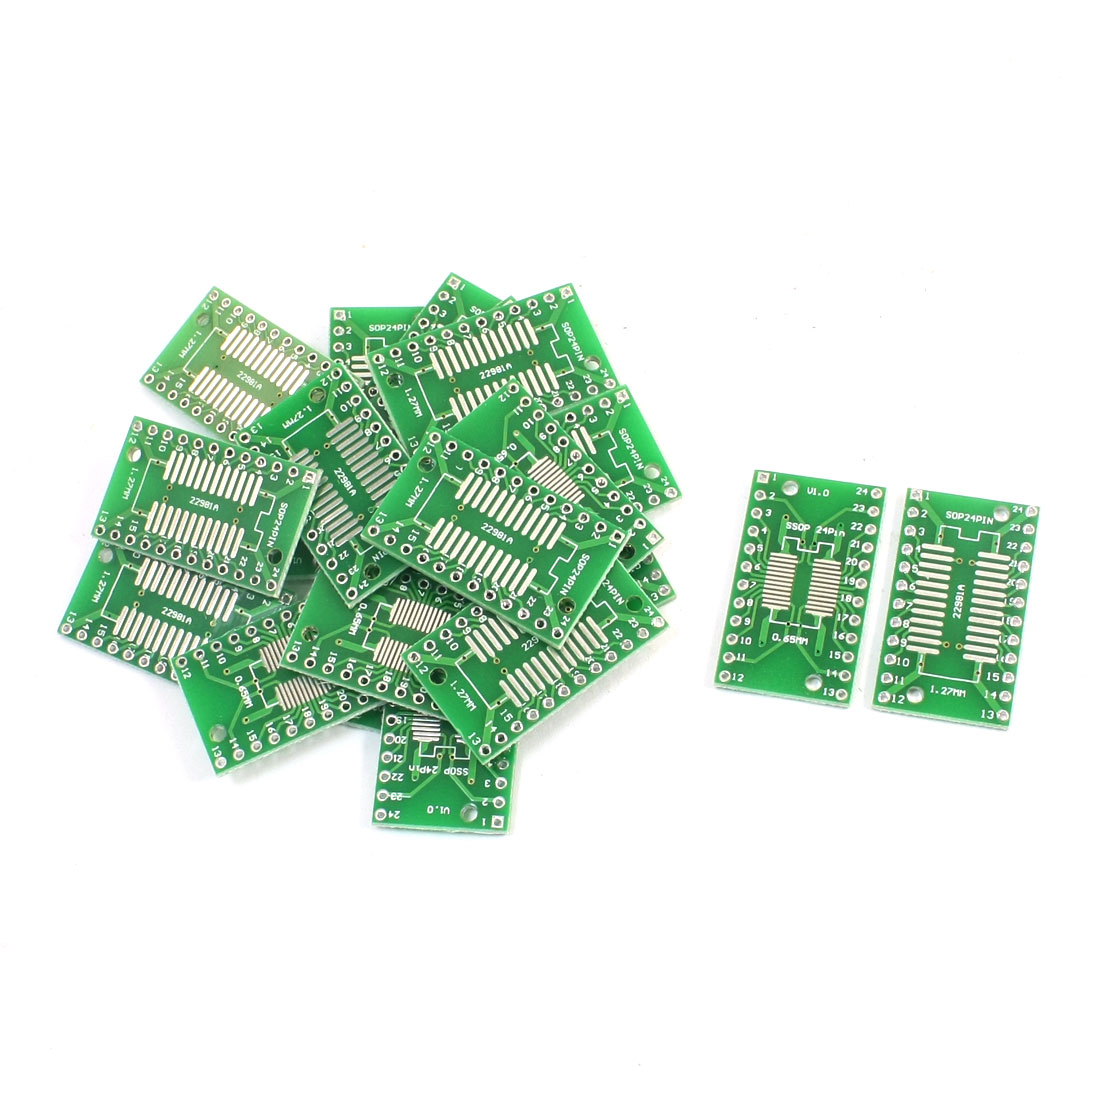 20Pcs 0.65mm 1.27mm SSOP24 TSSOP24 to 2.54mm DIP24 SMD IC PCB Adapter Socket